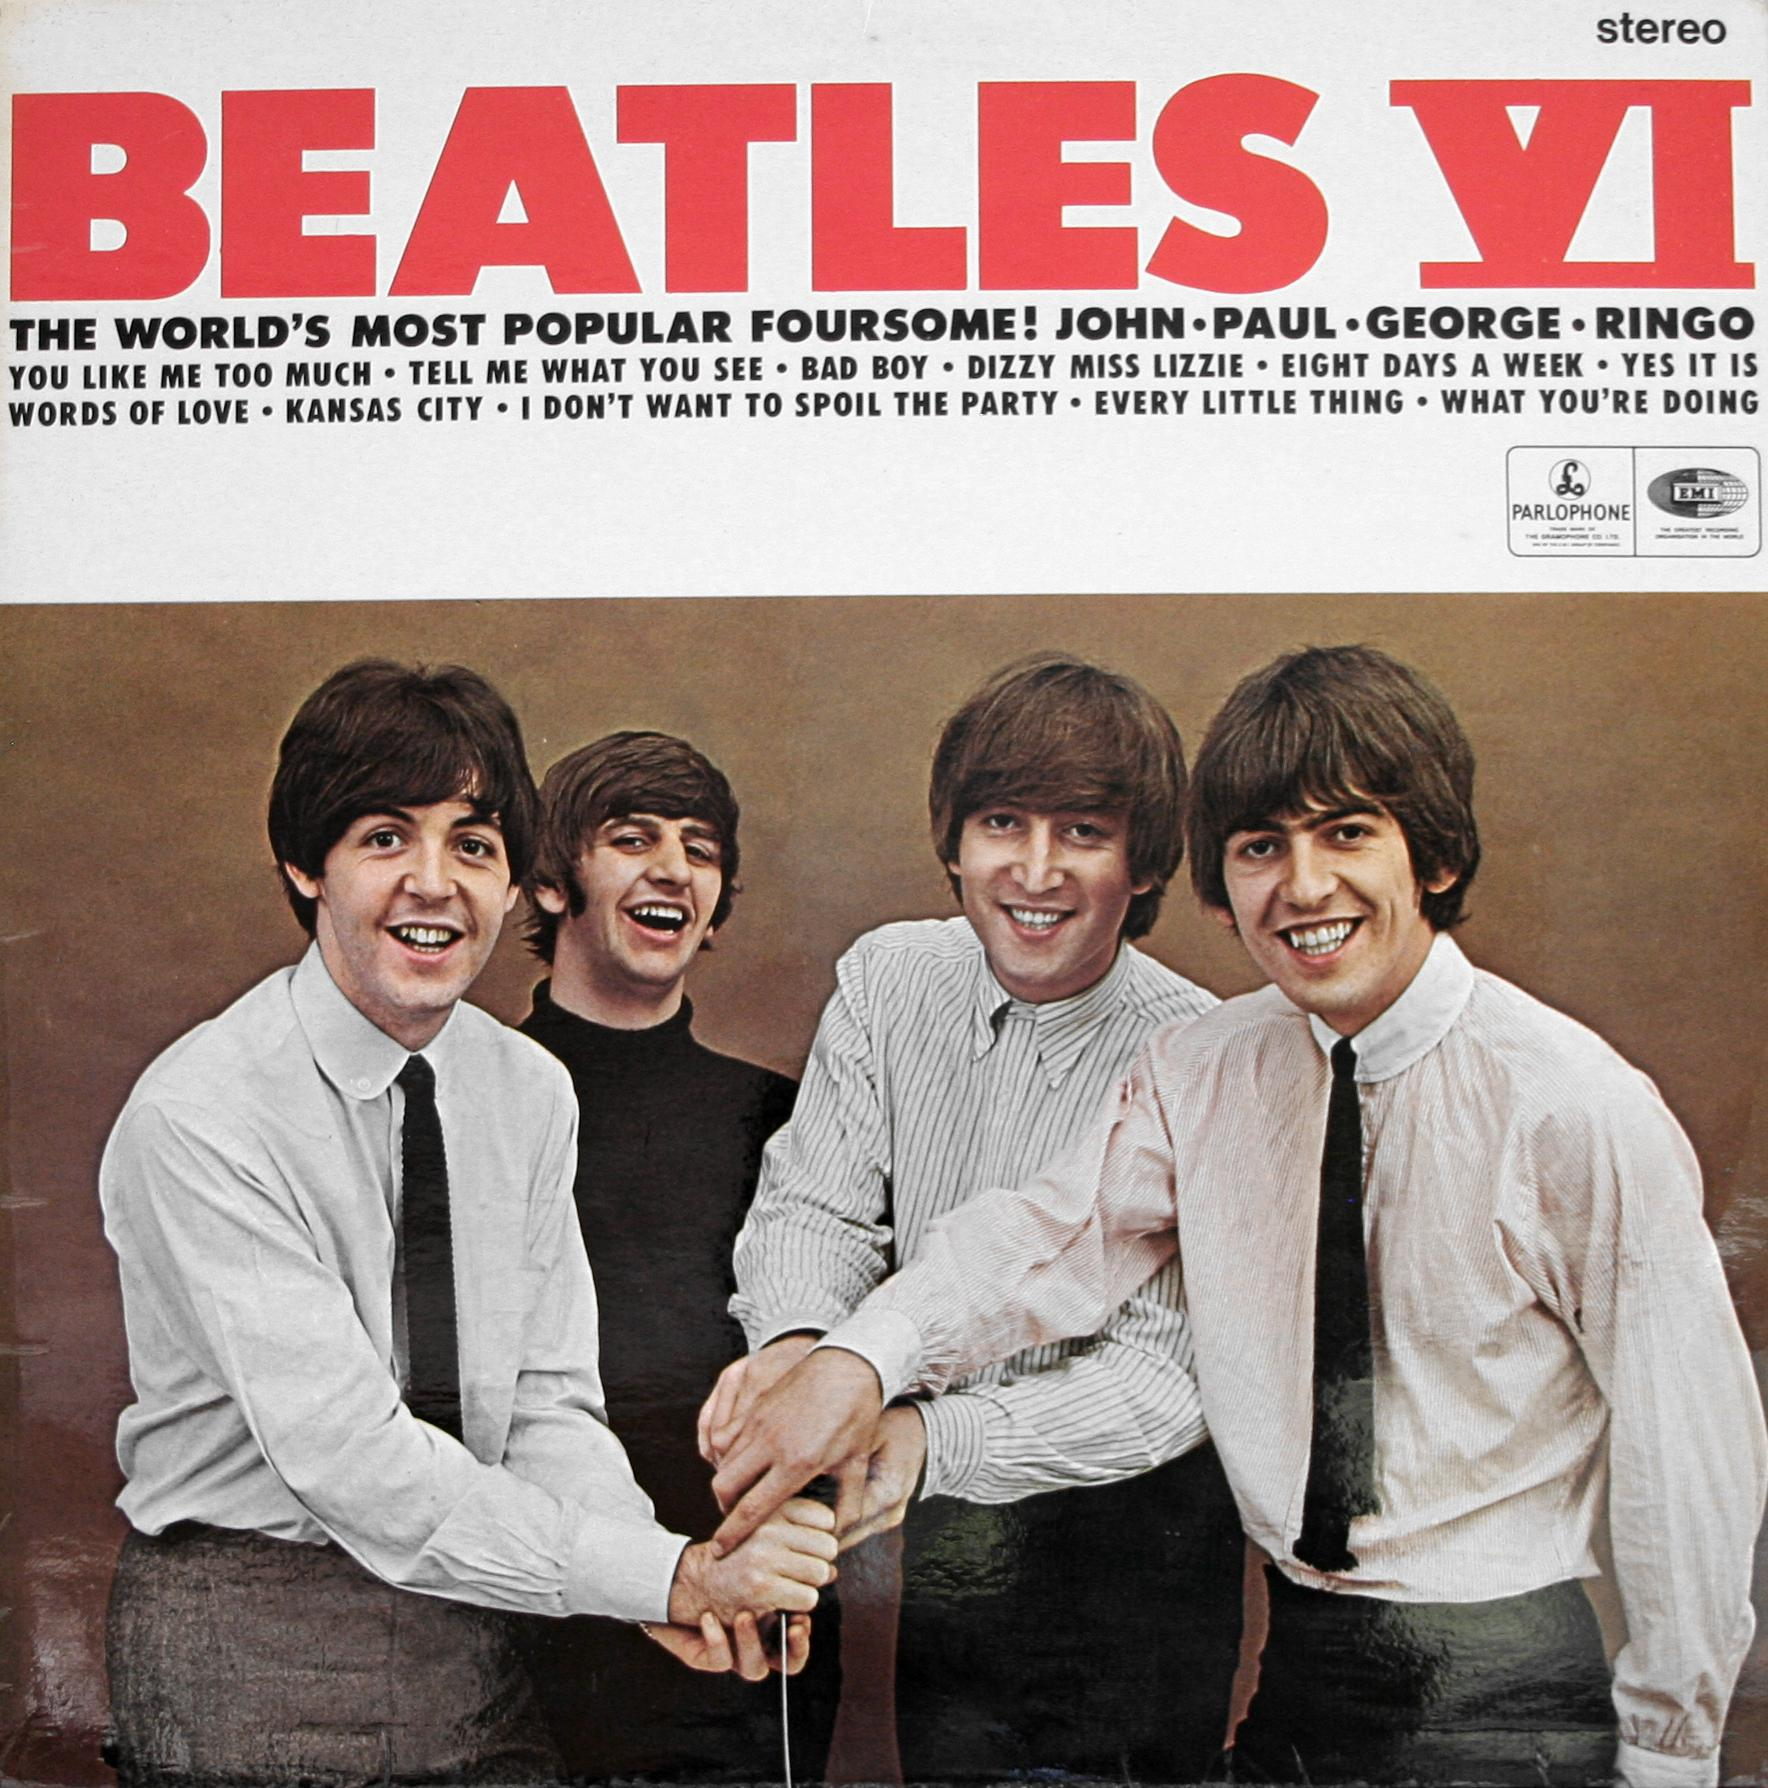 the late beatles 1966 to 1970 essay The beatles 1962-1966 and its sister album 1967-1970 were the first beatles   get back album, which was later reworked by phil spector and released as let it  be  with new essays by bill flanagan, and extra photographs of the beatles.